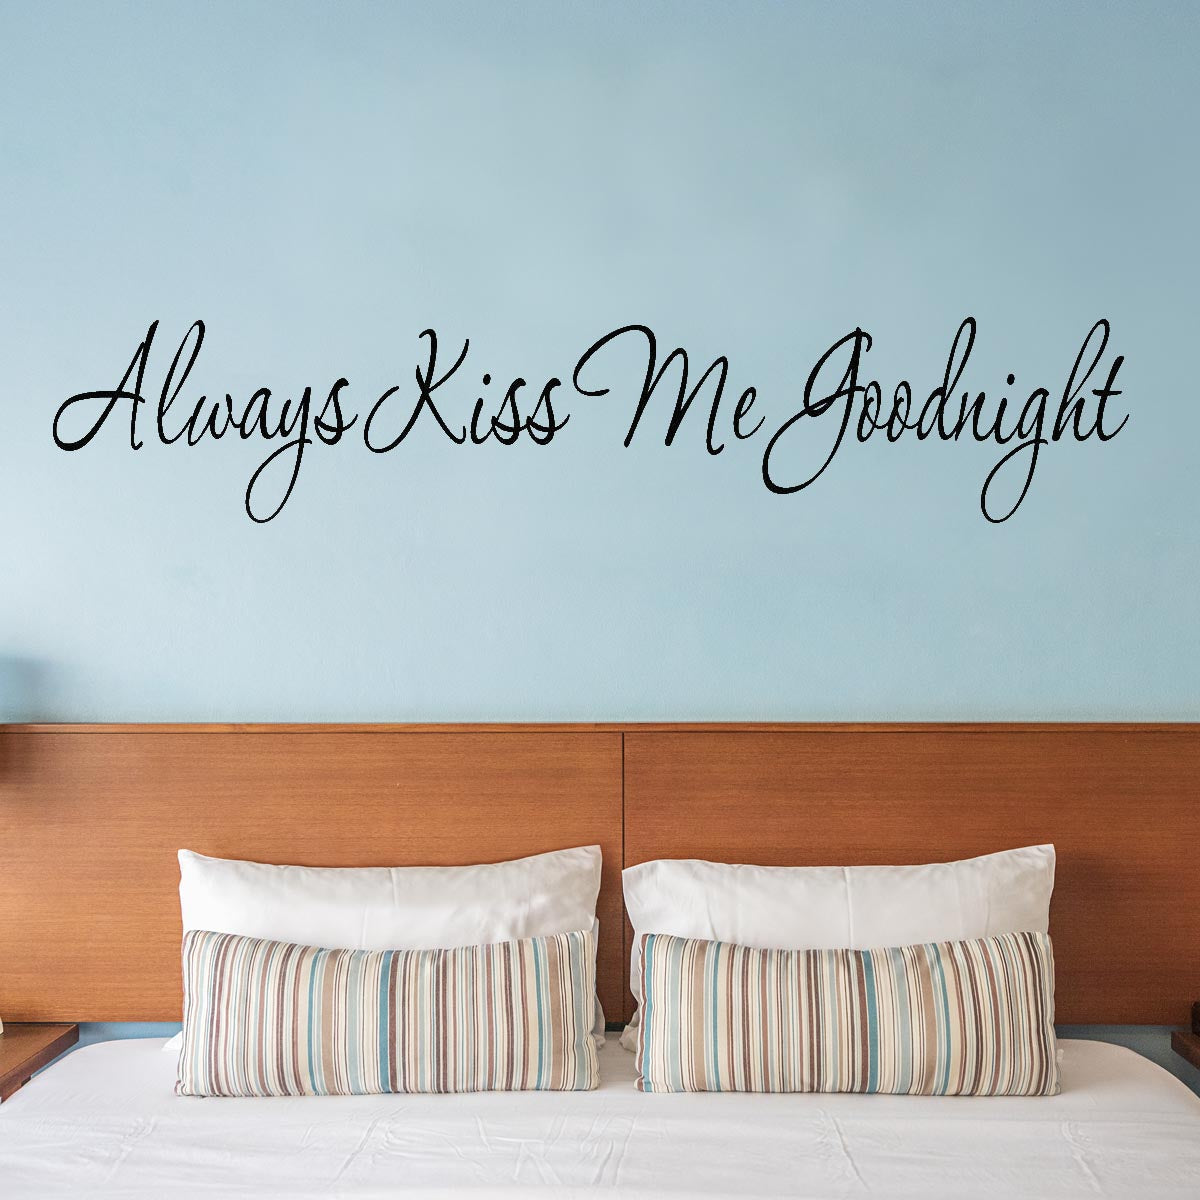 VWAQ Always Kiss Me Goodnight Wall Quote Decal - VWAQ Vinyl Wall Art Quotes and Prints